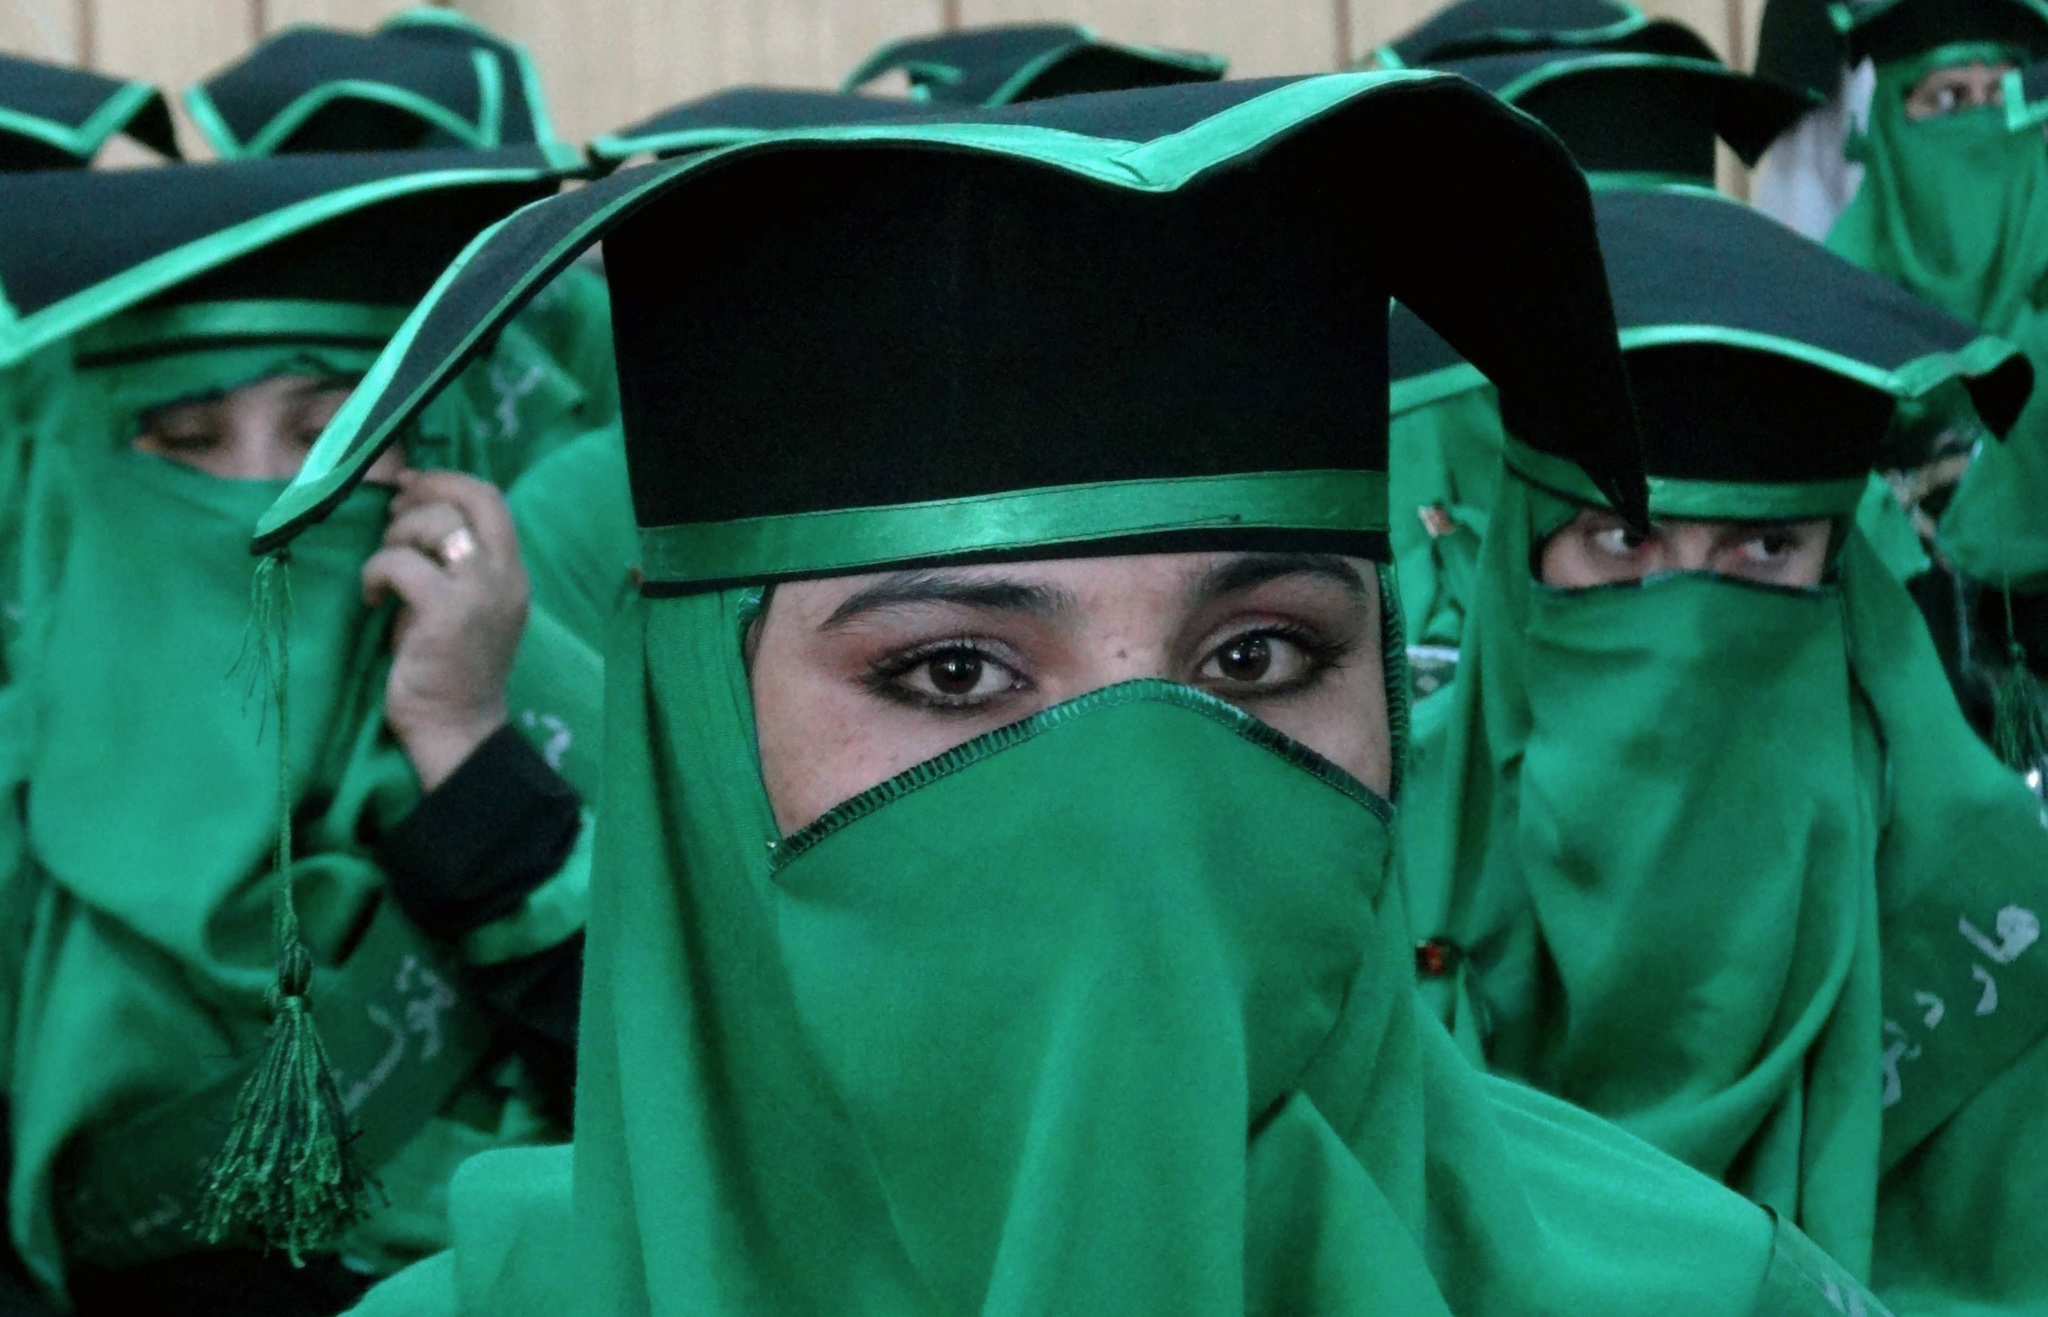 Newly-graduated Afghan midwives attend a commencement ceremony at the Governor's House in Jalalabad, Nangarhar province. Some 40 midwives graduated in the ceremony after undergoing a two and half year midwifery programme.